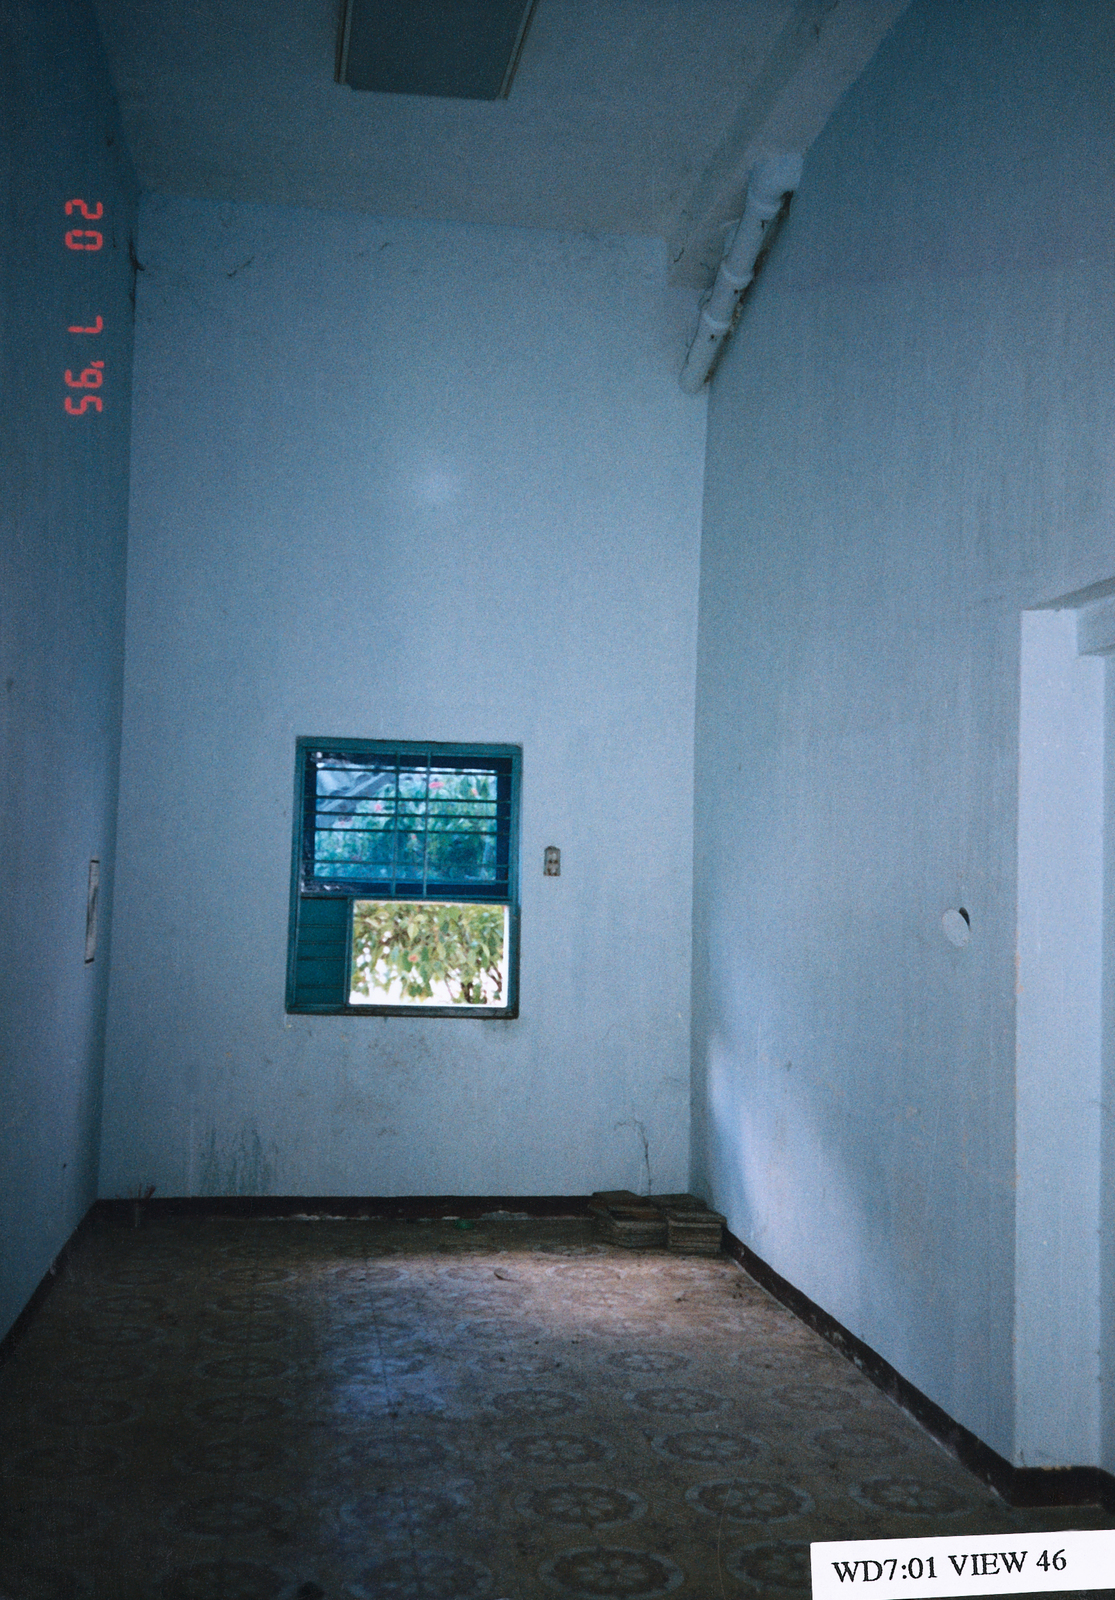 Ho Chi Minh City - Warehouse - 1995